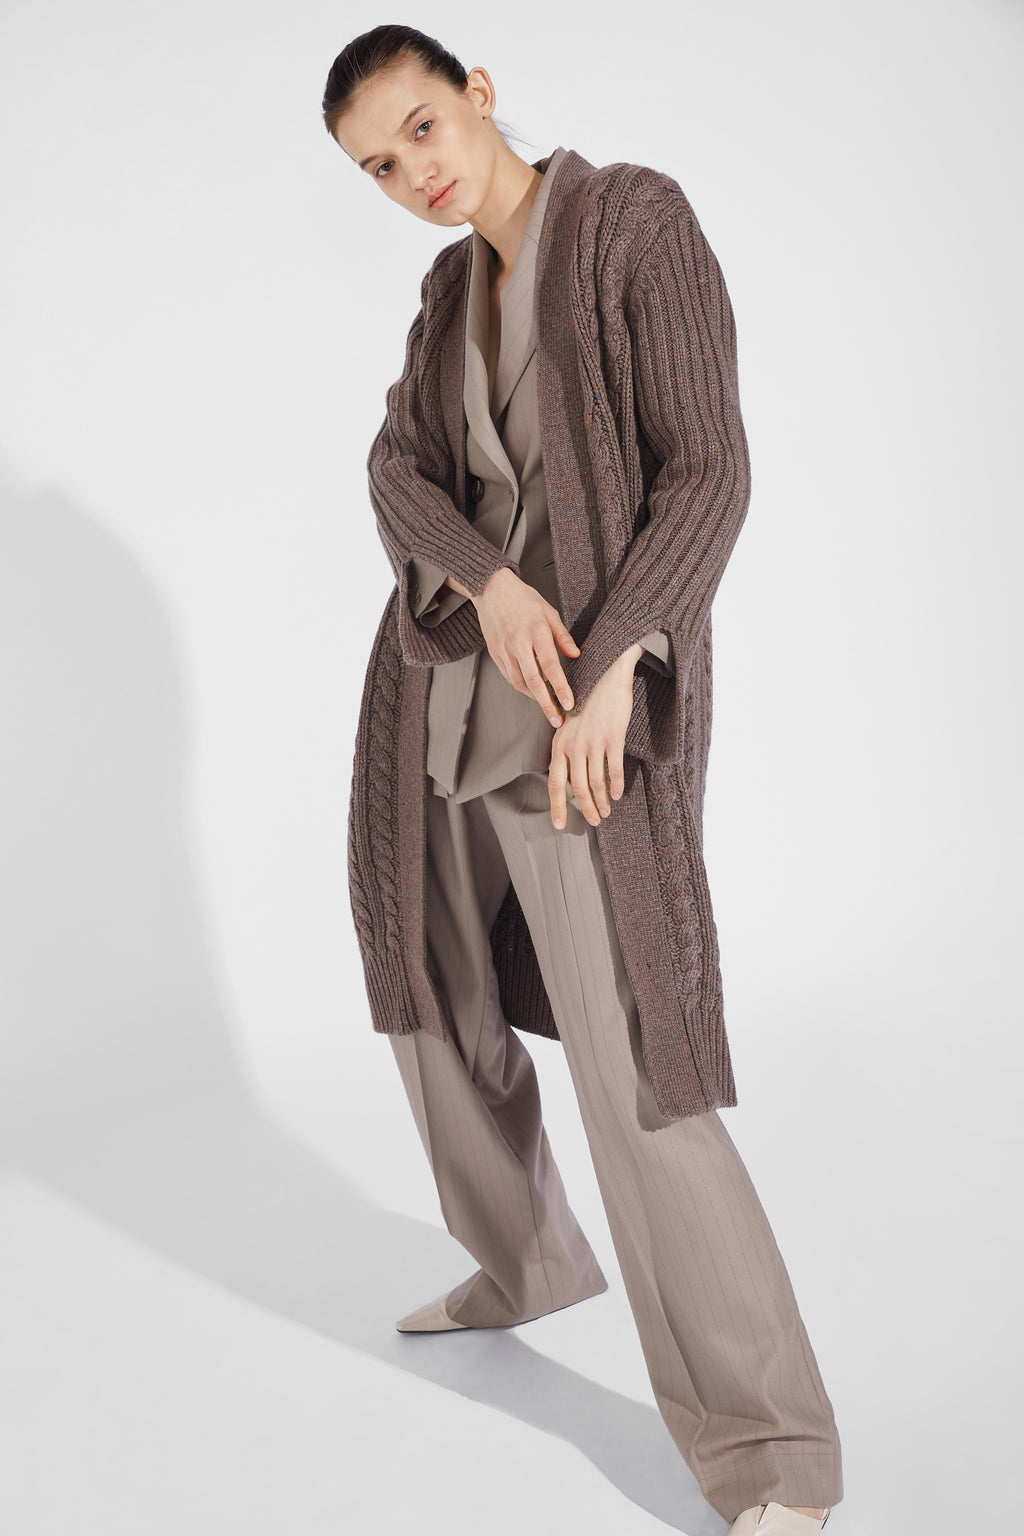 Hemp Pattern Long Cardigan - Khaki